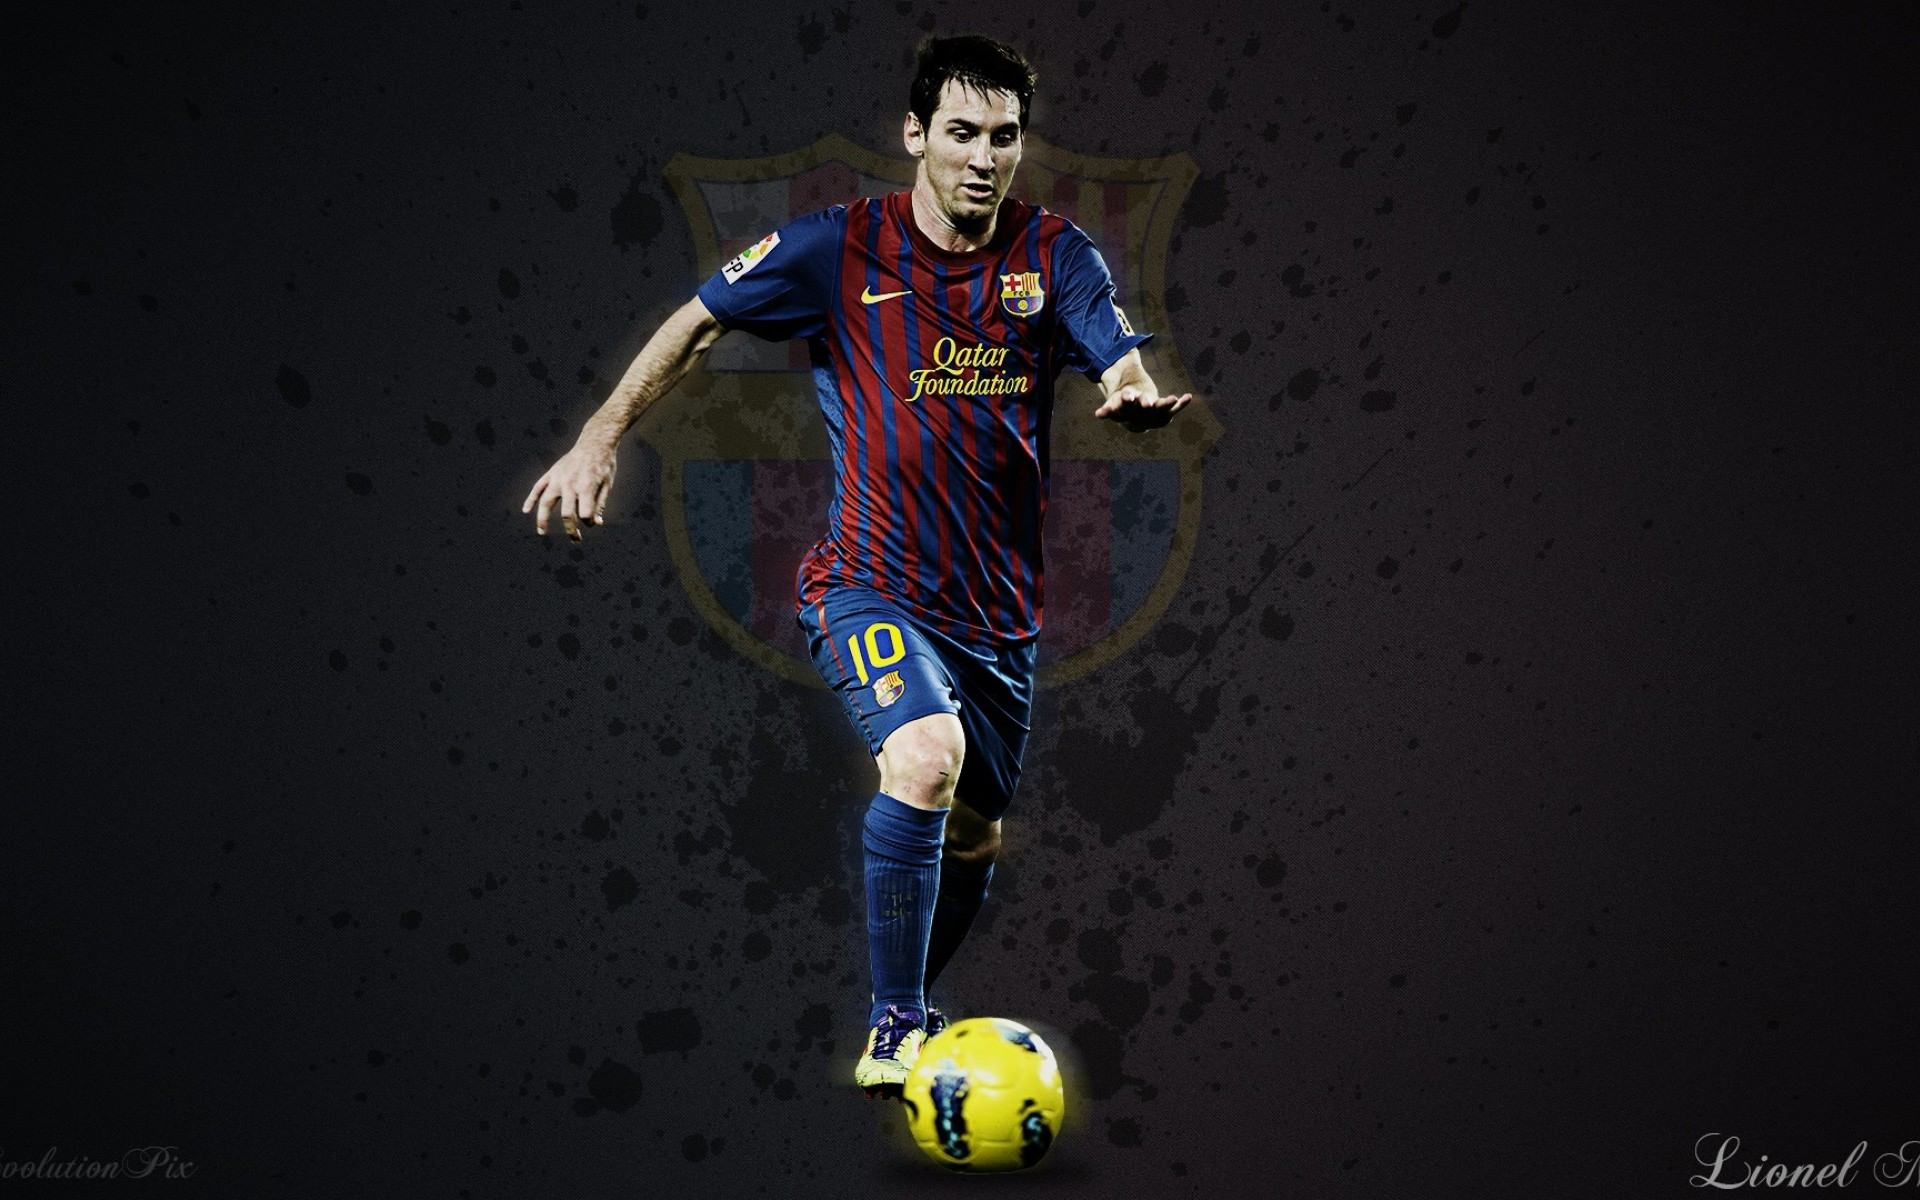 FC-Barcelona-Lionel-Messi-2016-2017-Wallpaper-HD-webstudy.pk